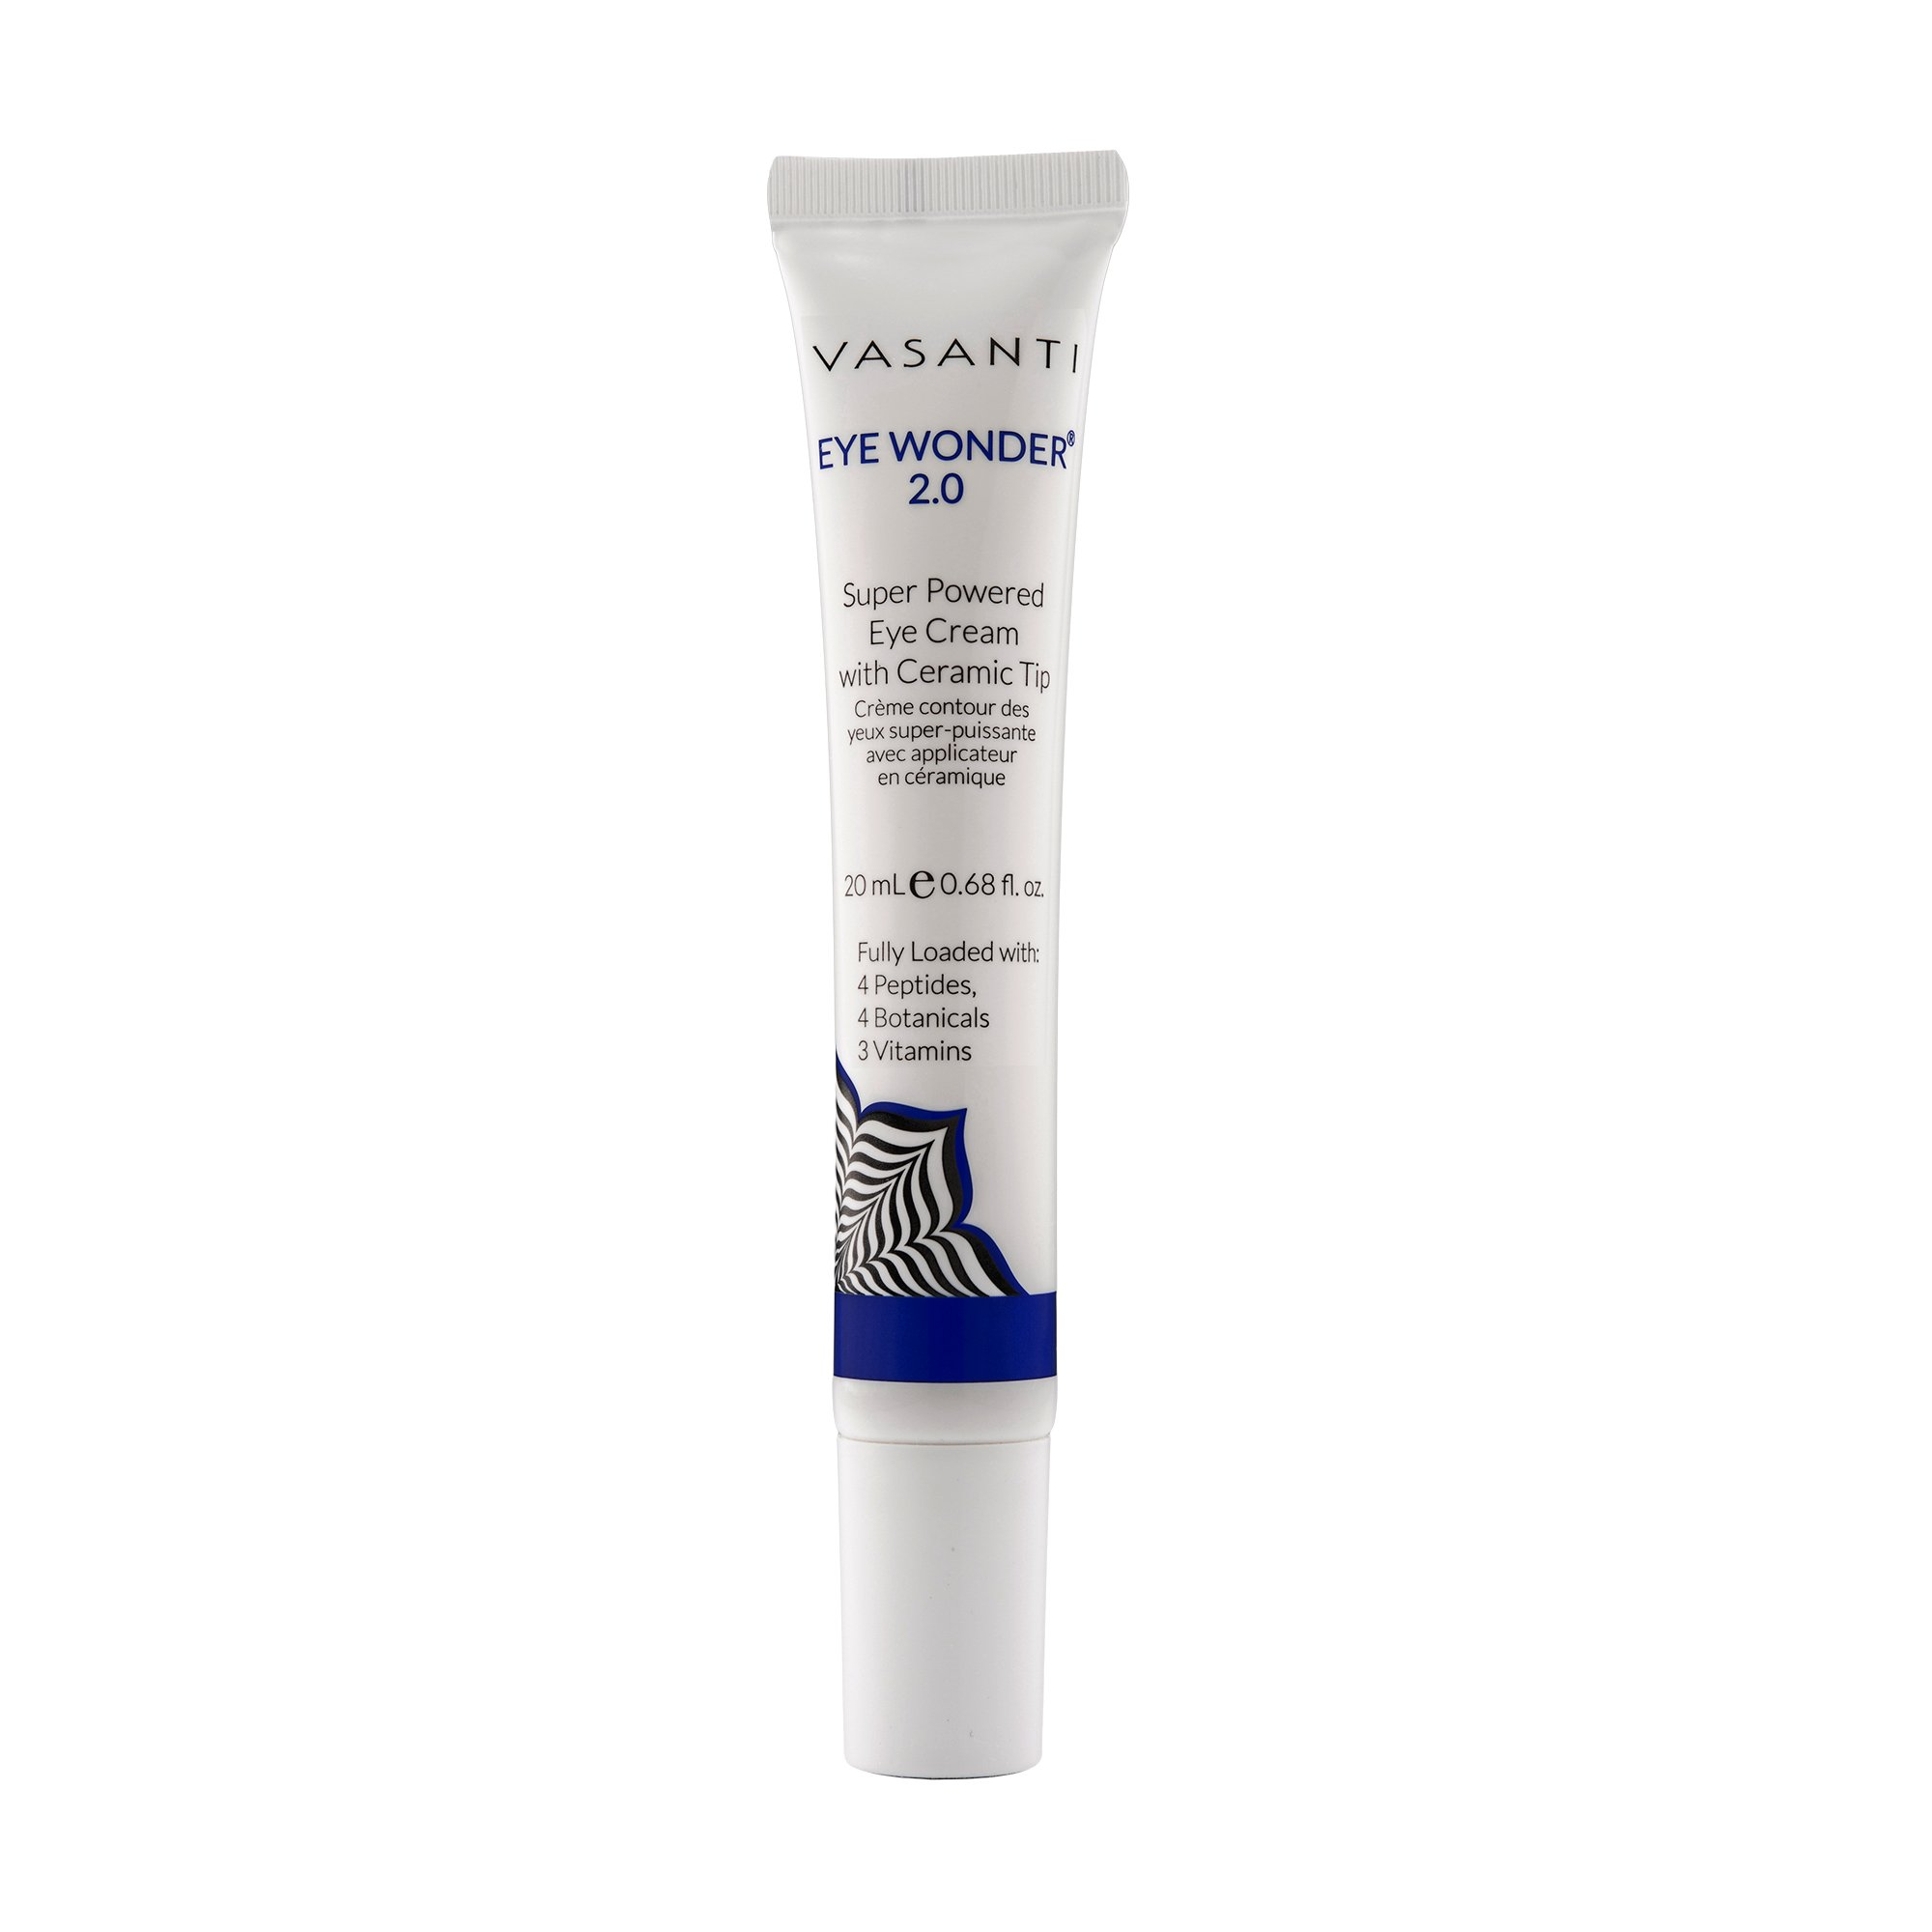 Eye Wonder 2.0 by VASANTI - Super Powered Eye Cream with Ceramic Tip - Paraben Free, Over 95% Natural - Helps with Dark Circles, Wrinkles, Fine Lines (0.68 fl oz.)